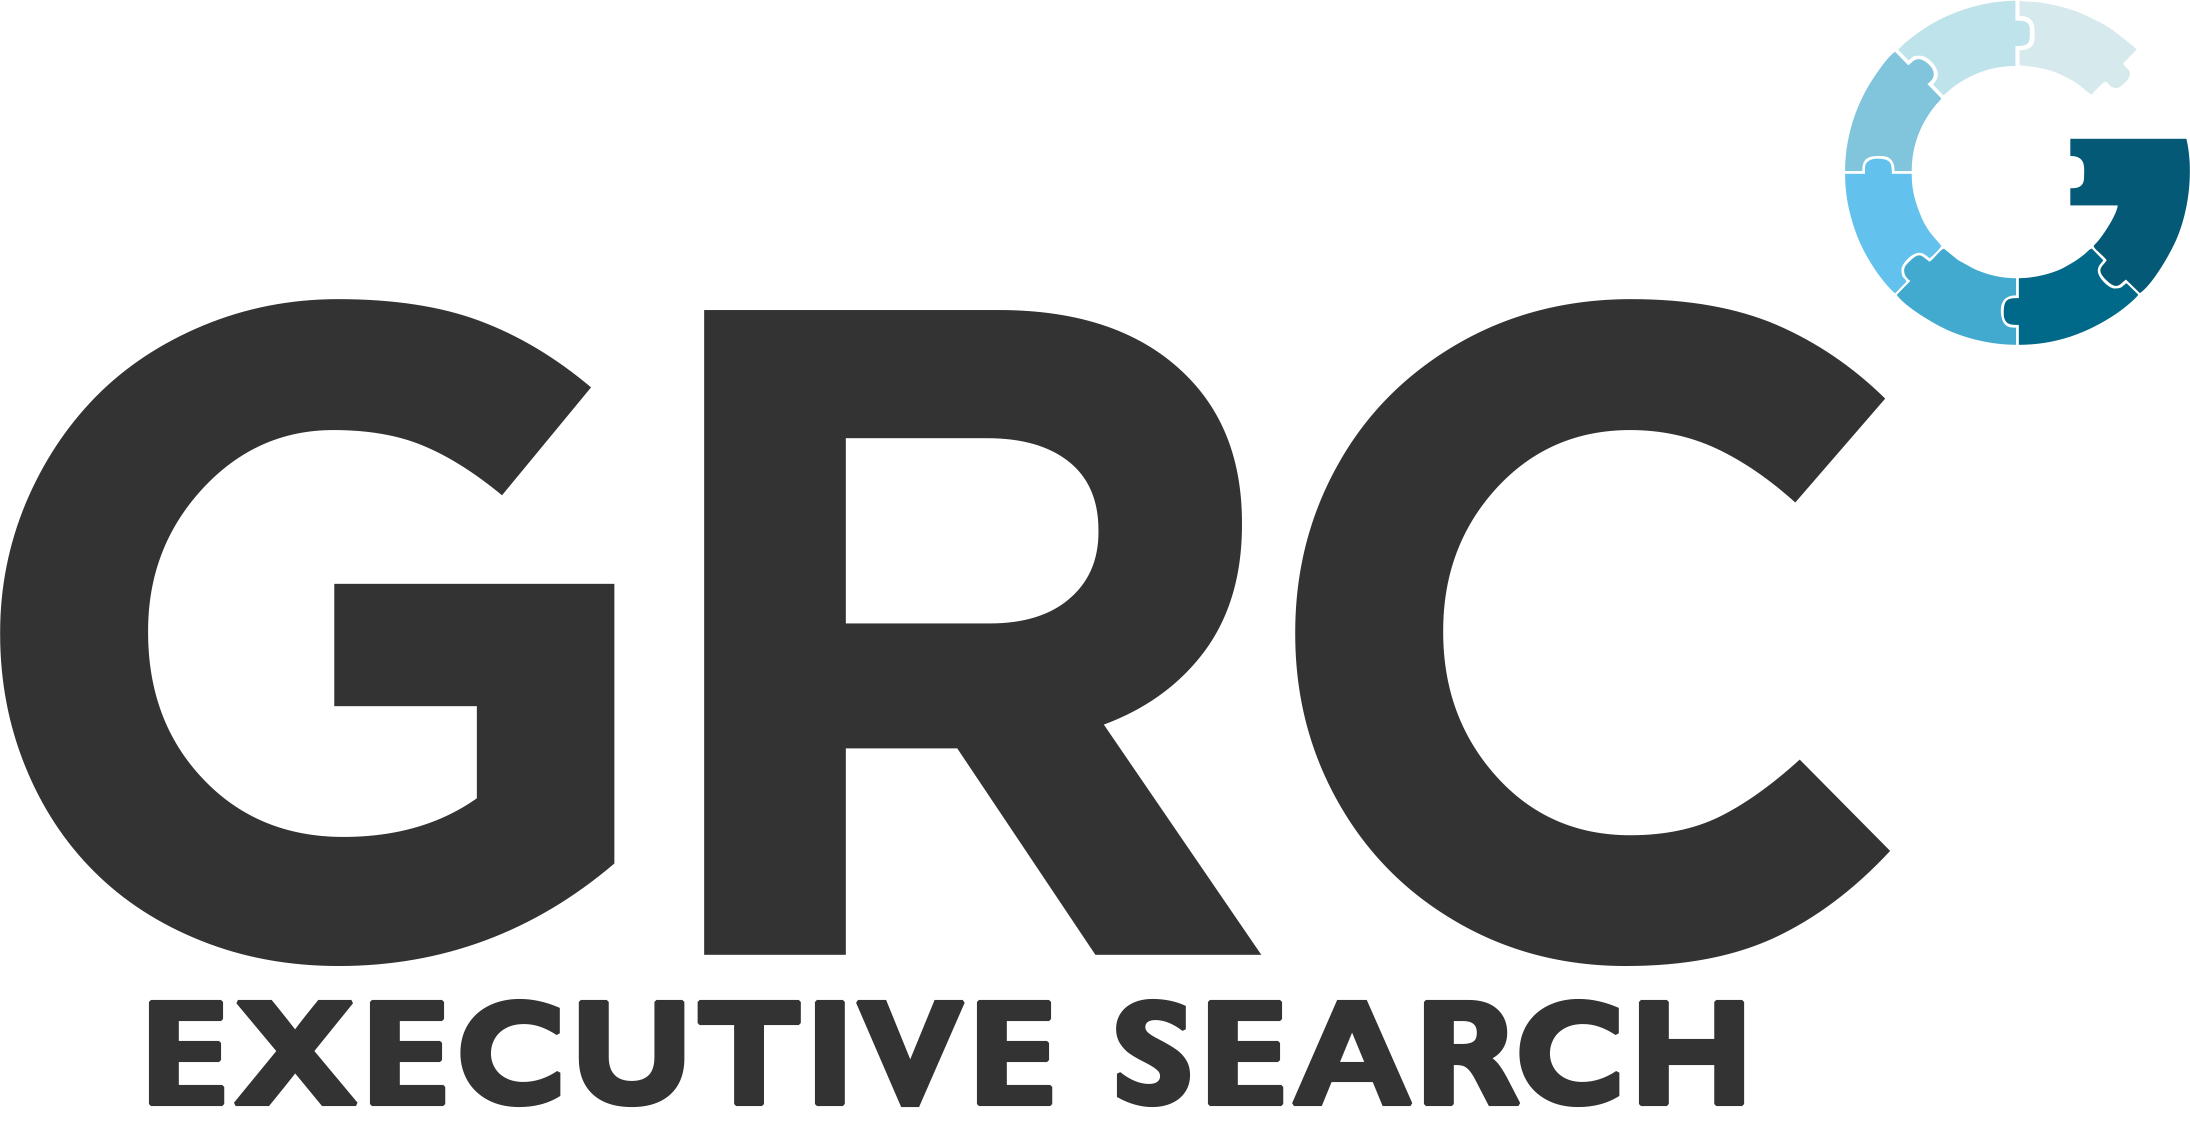 GRC Executive Search and Management Consulting Company